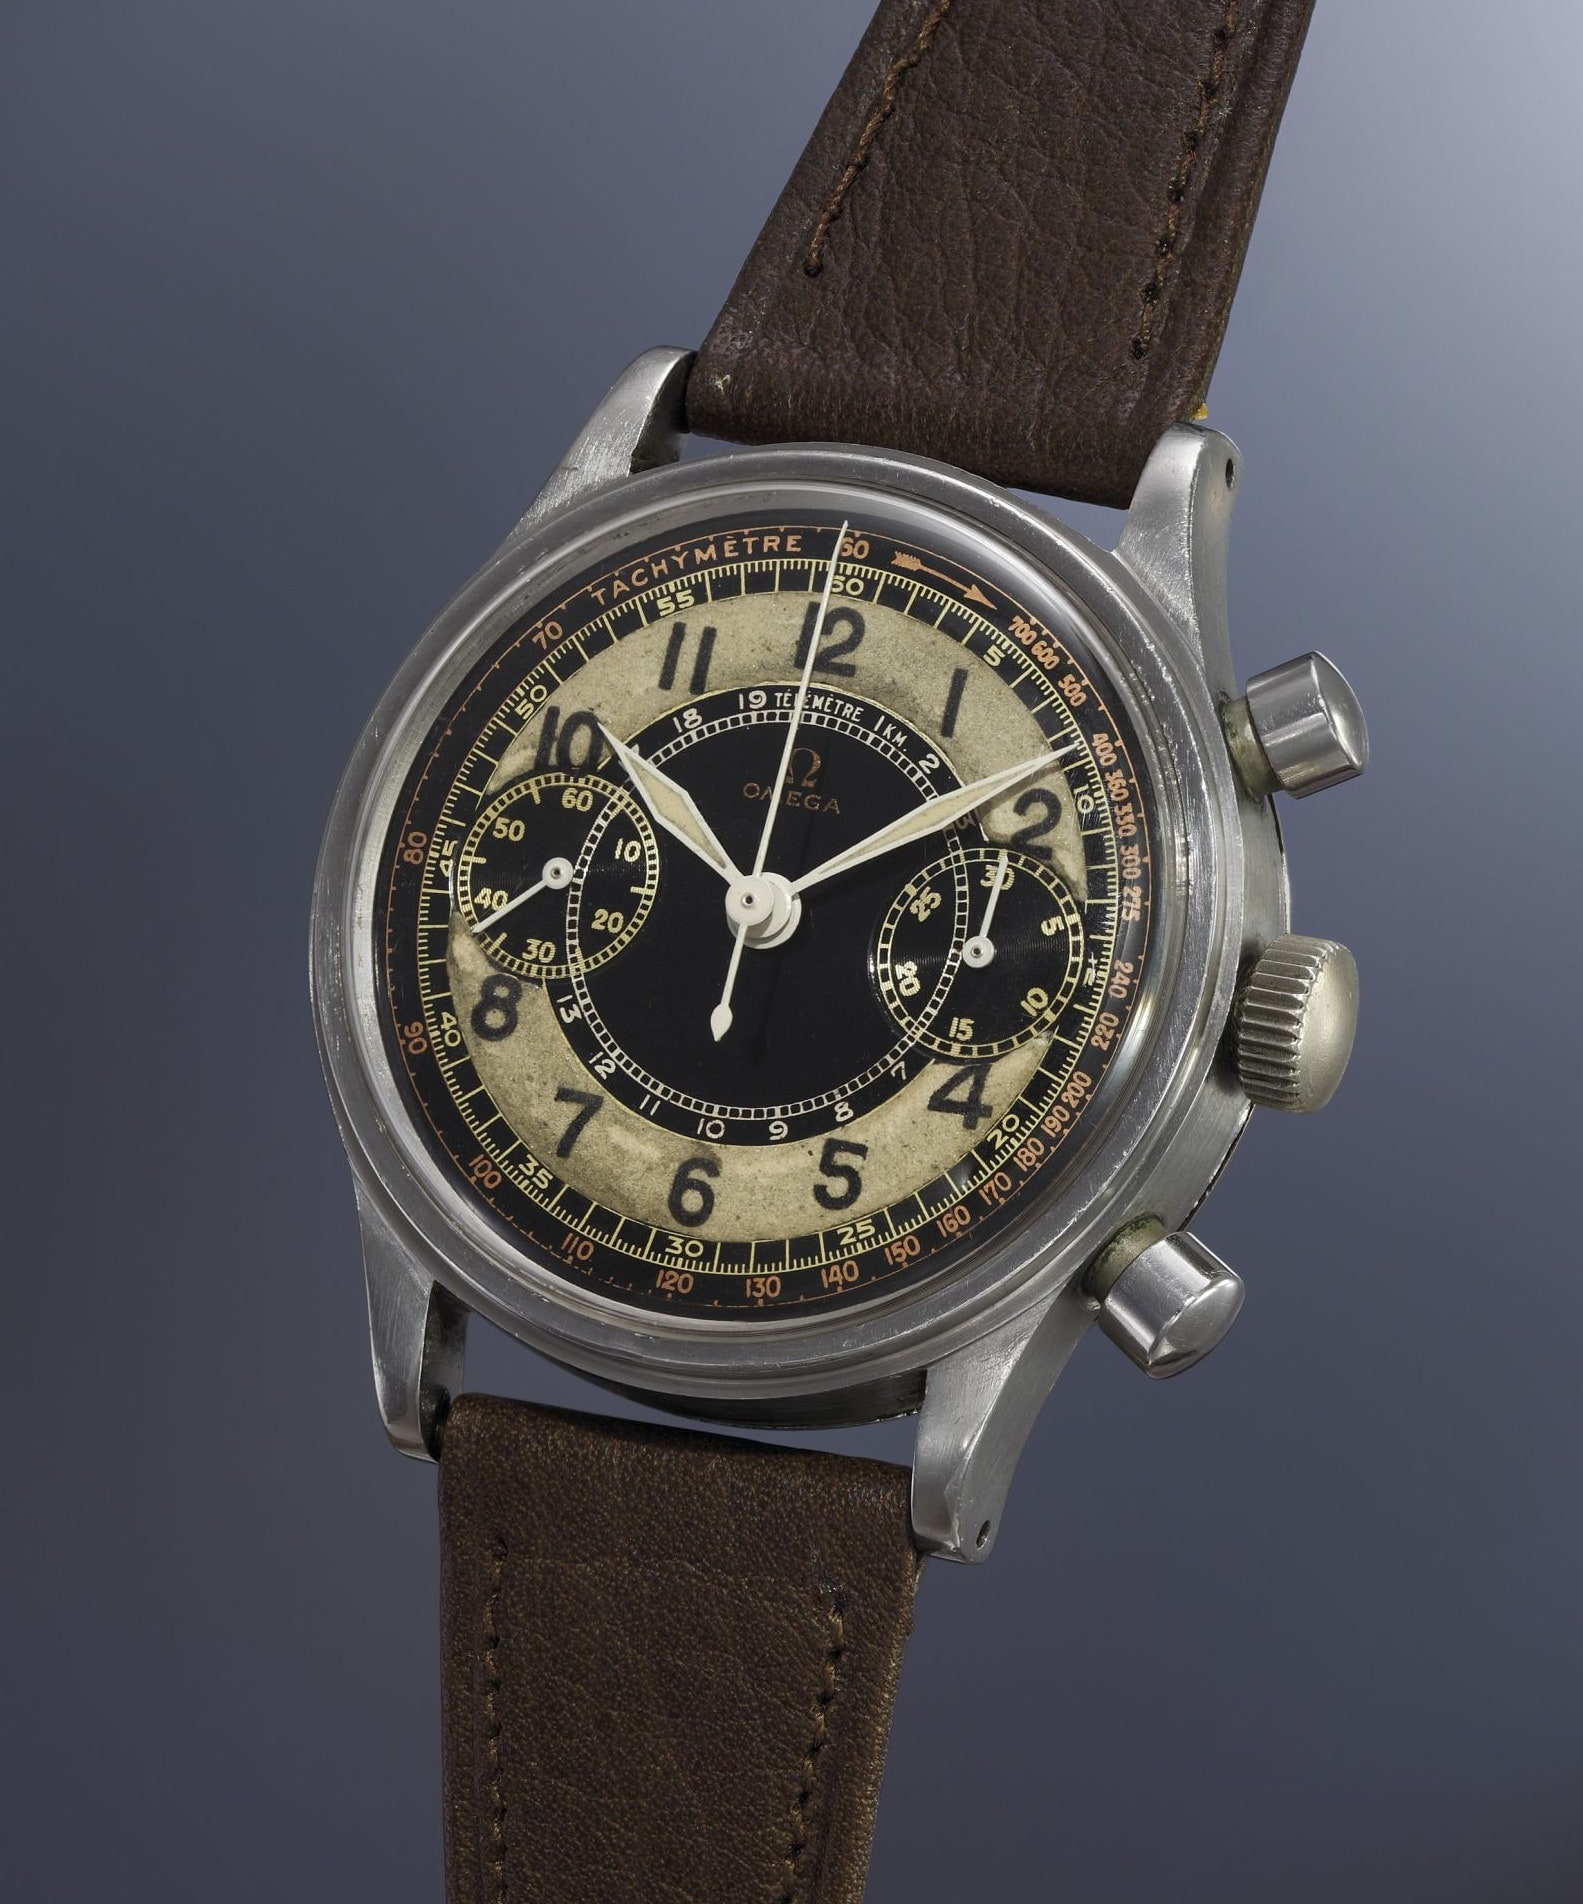 Vintage Omega Chronograph 33.3 CHRO - Image by Phillips Watches